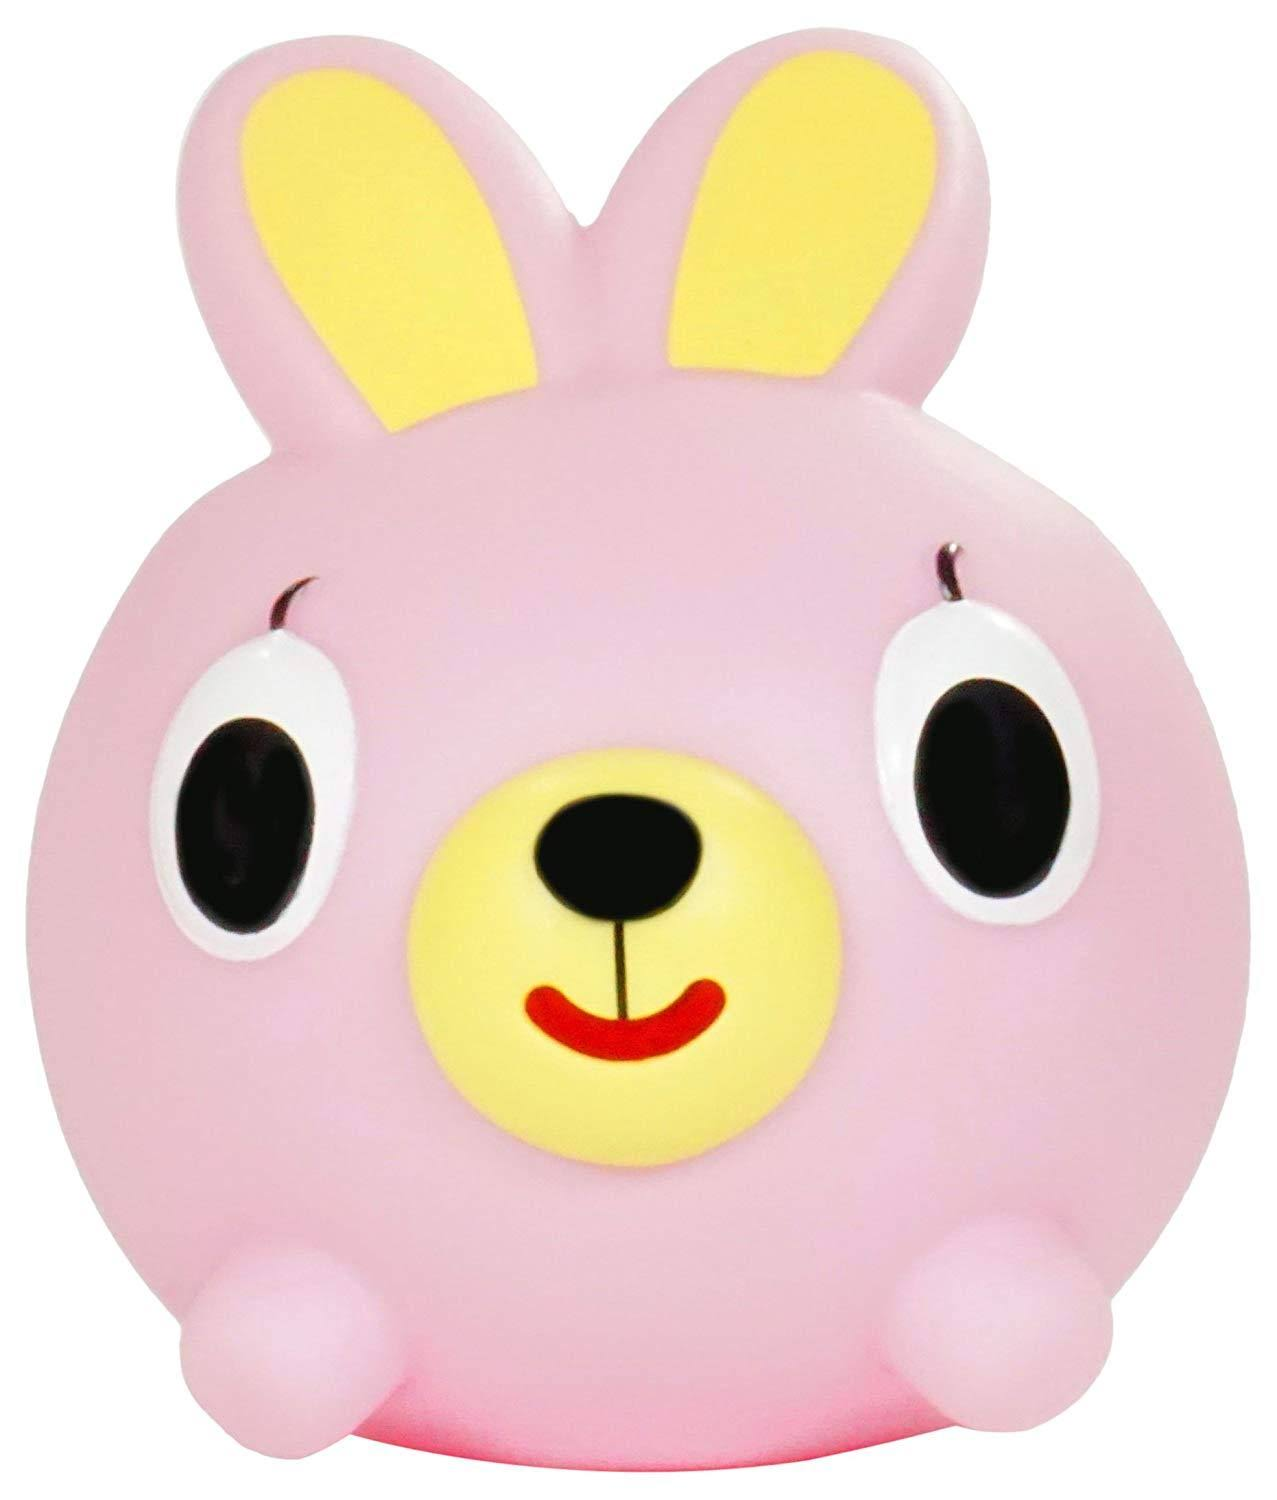 Jabber Ball Bunny Squeak Toy Figure - Pink